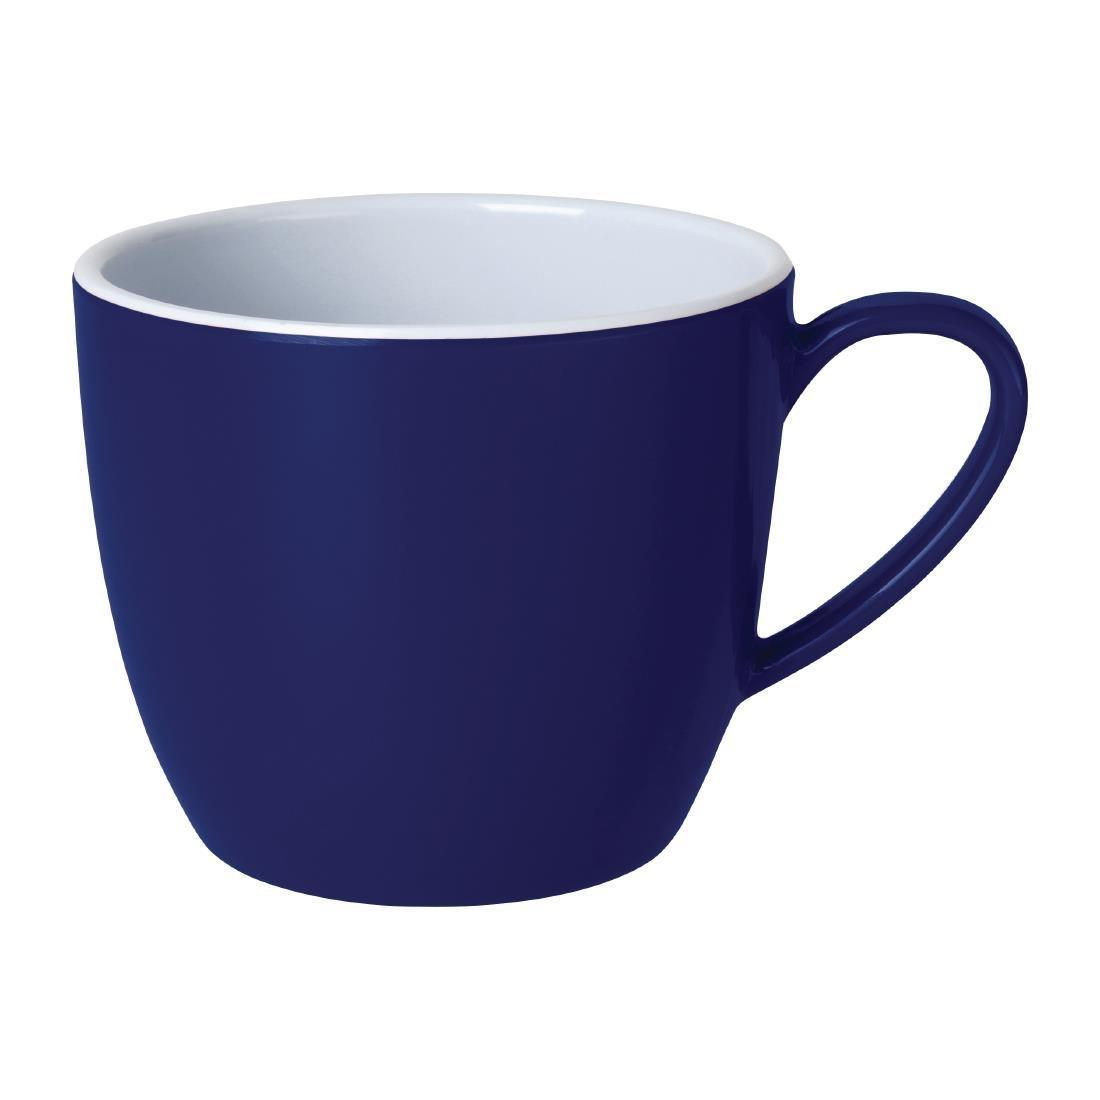 Kristallon Gala Colour Rim Melamine Mug Blue 285ml - Case 6 - DE609